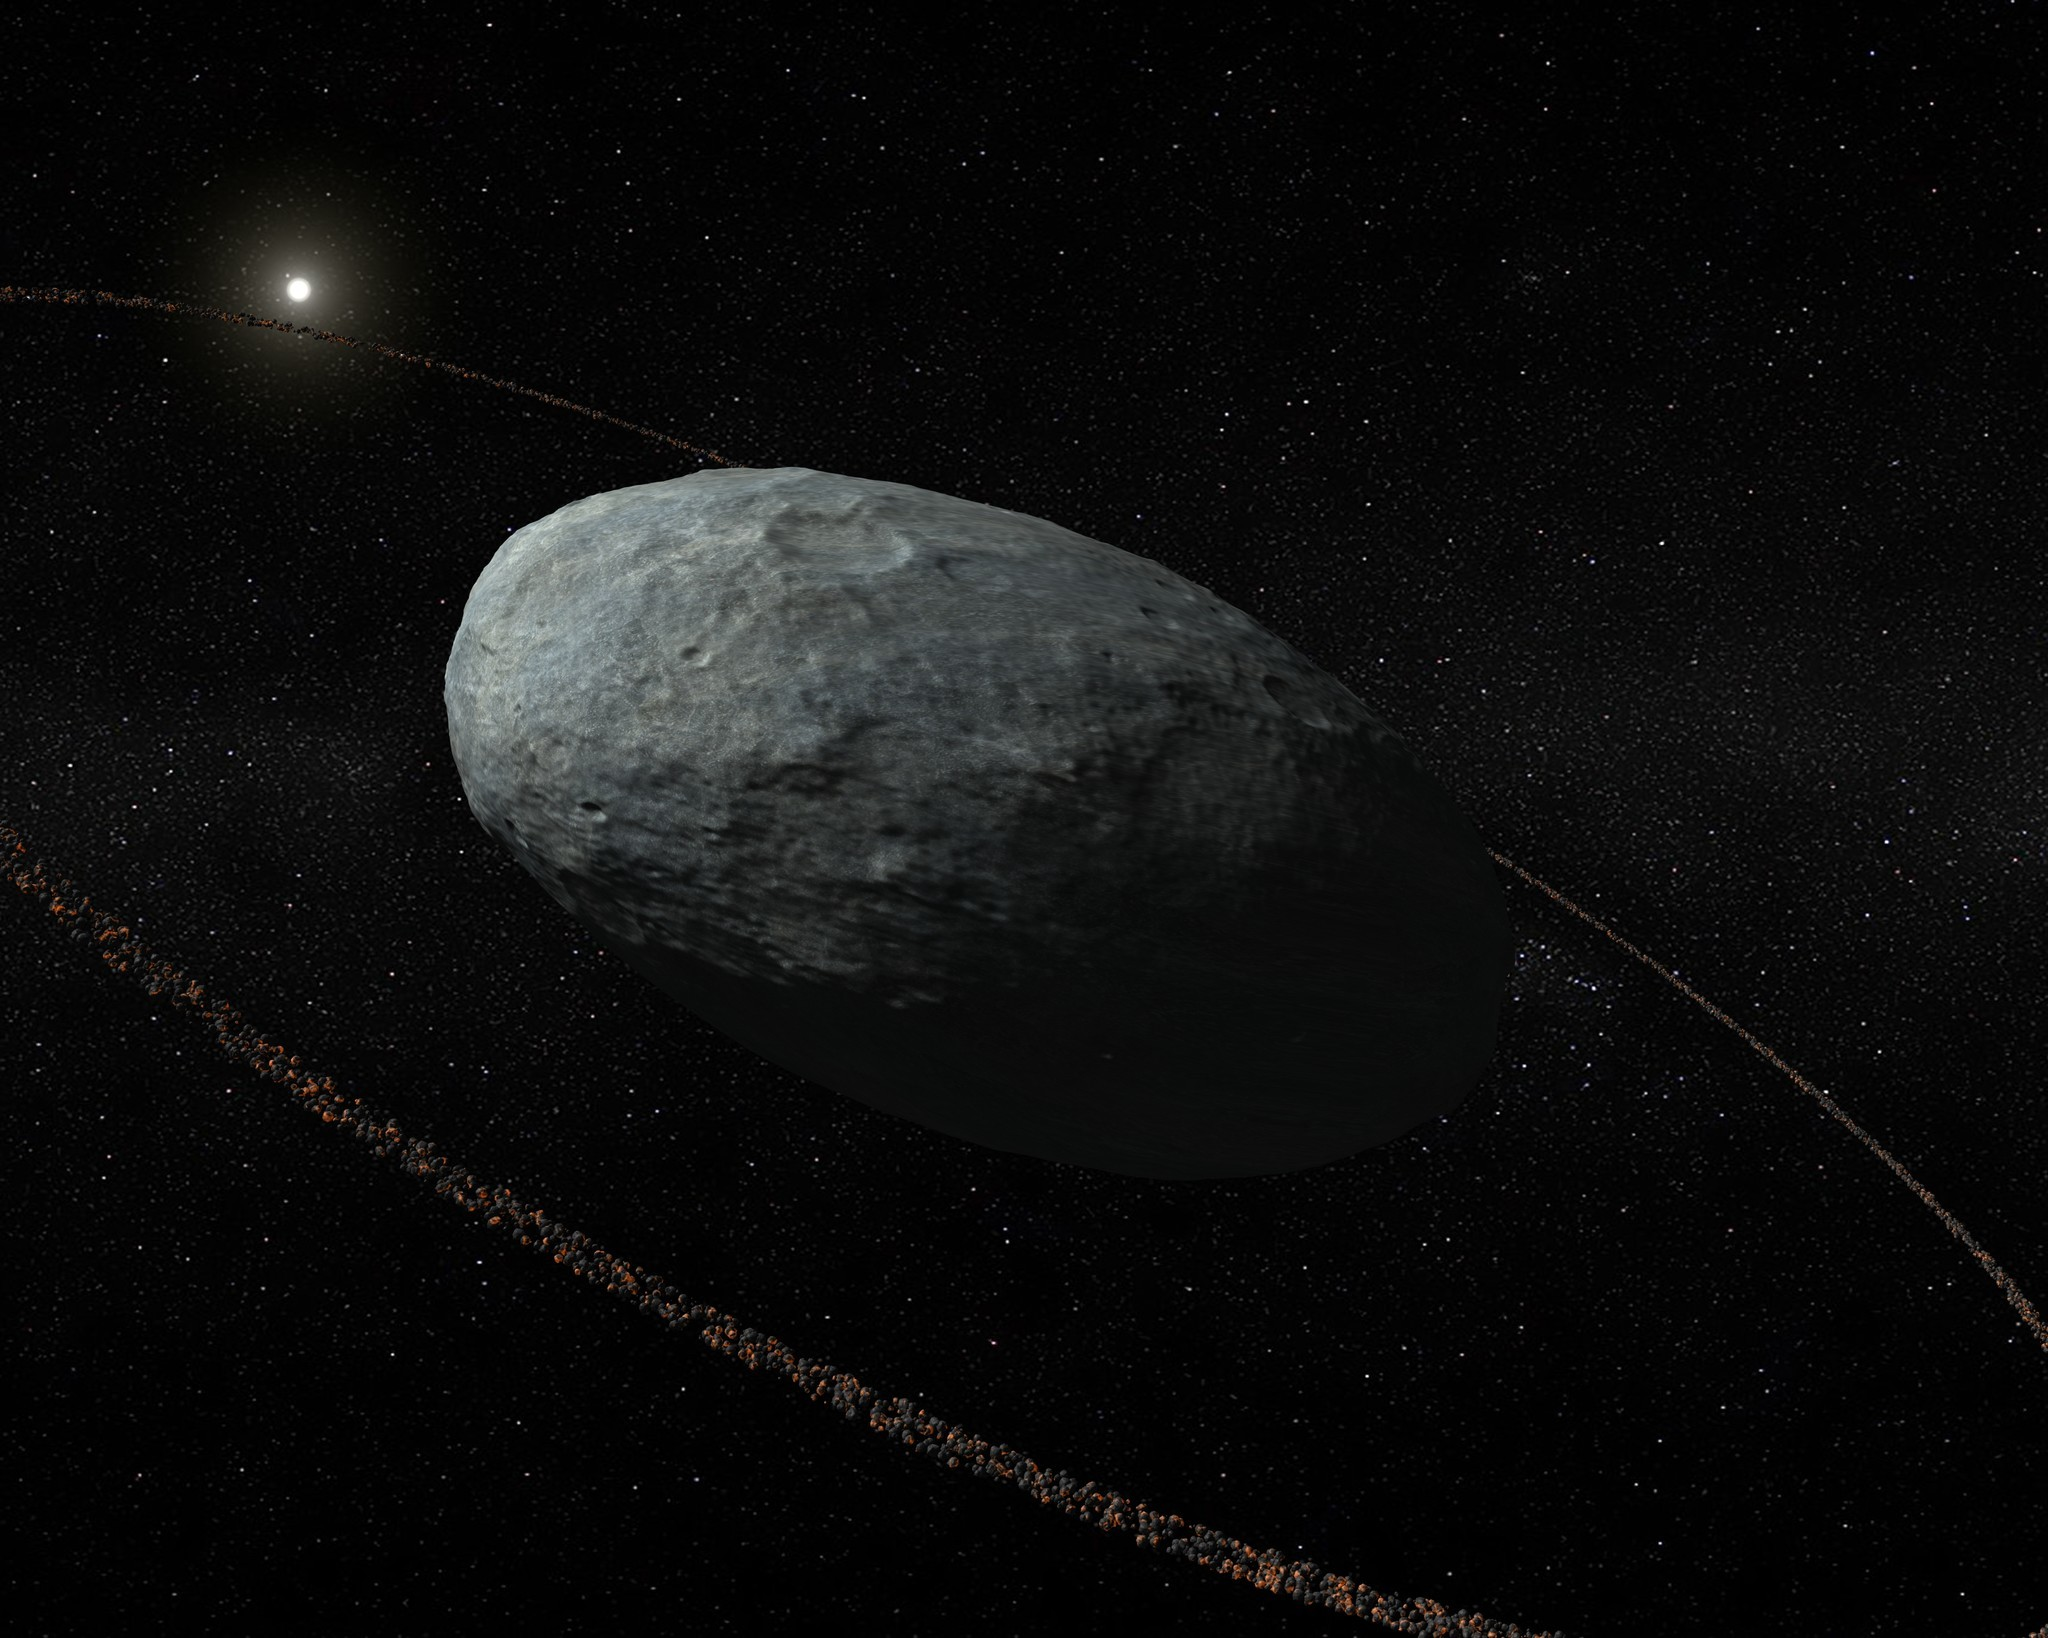 Haumea's ring is about 600 miles from the surface of the dwarf planet.